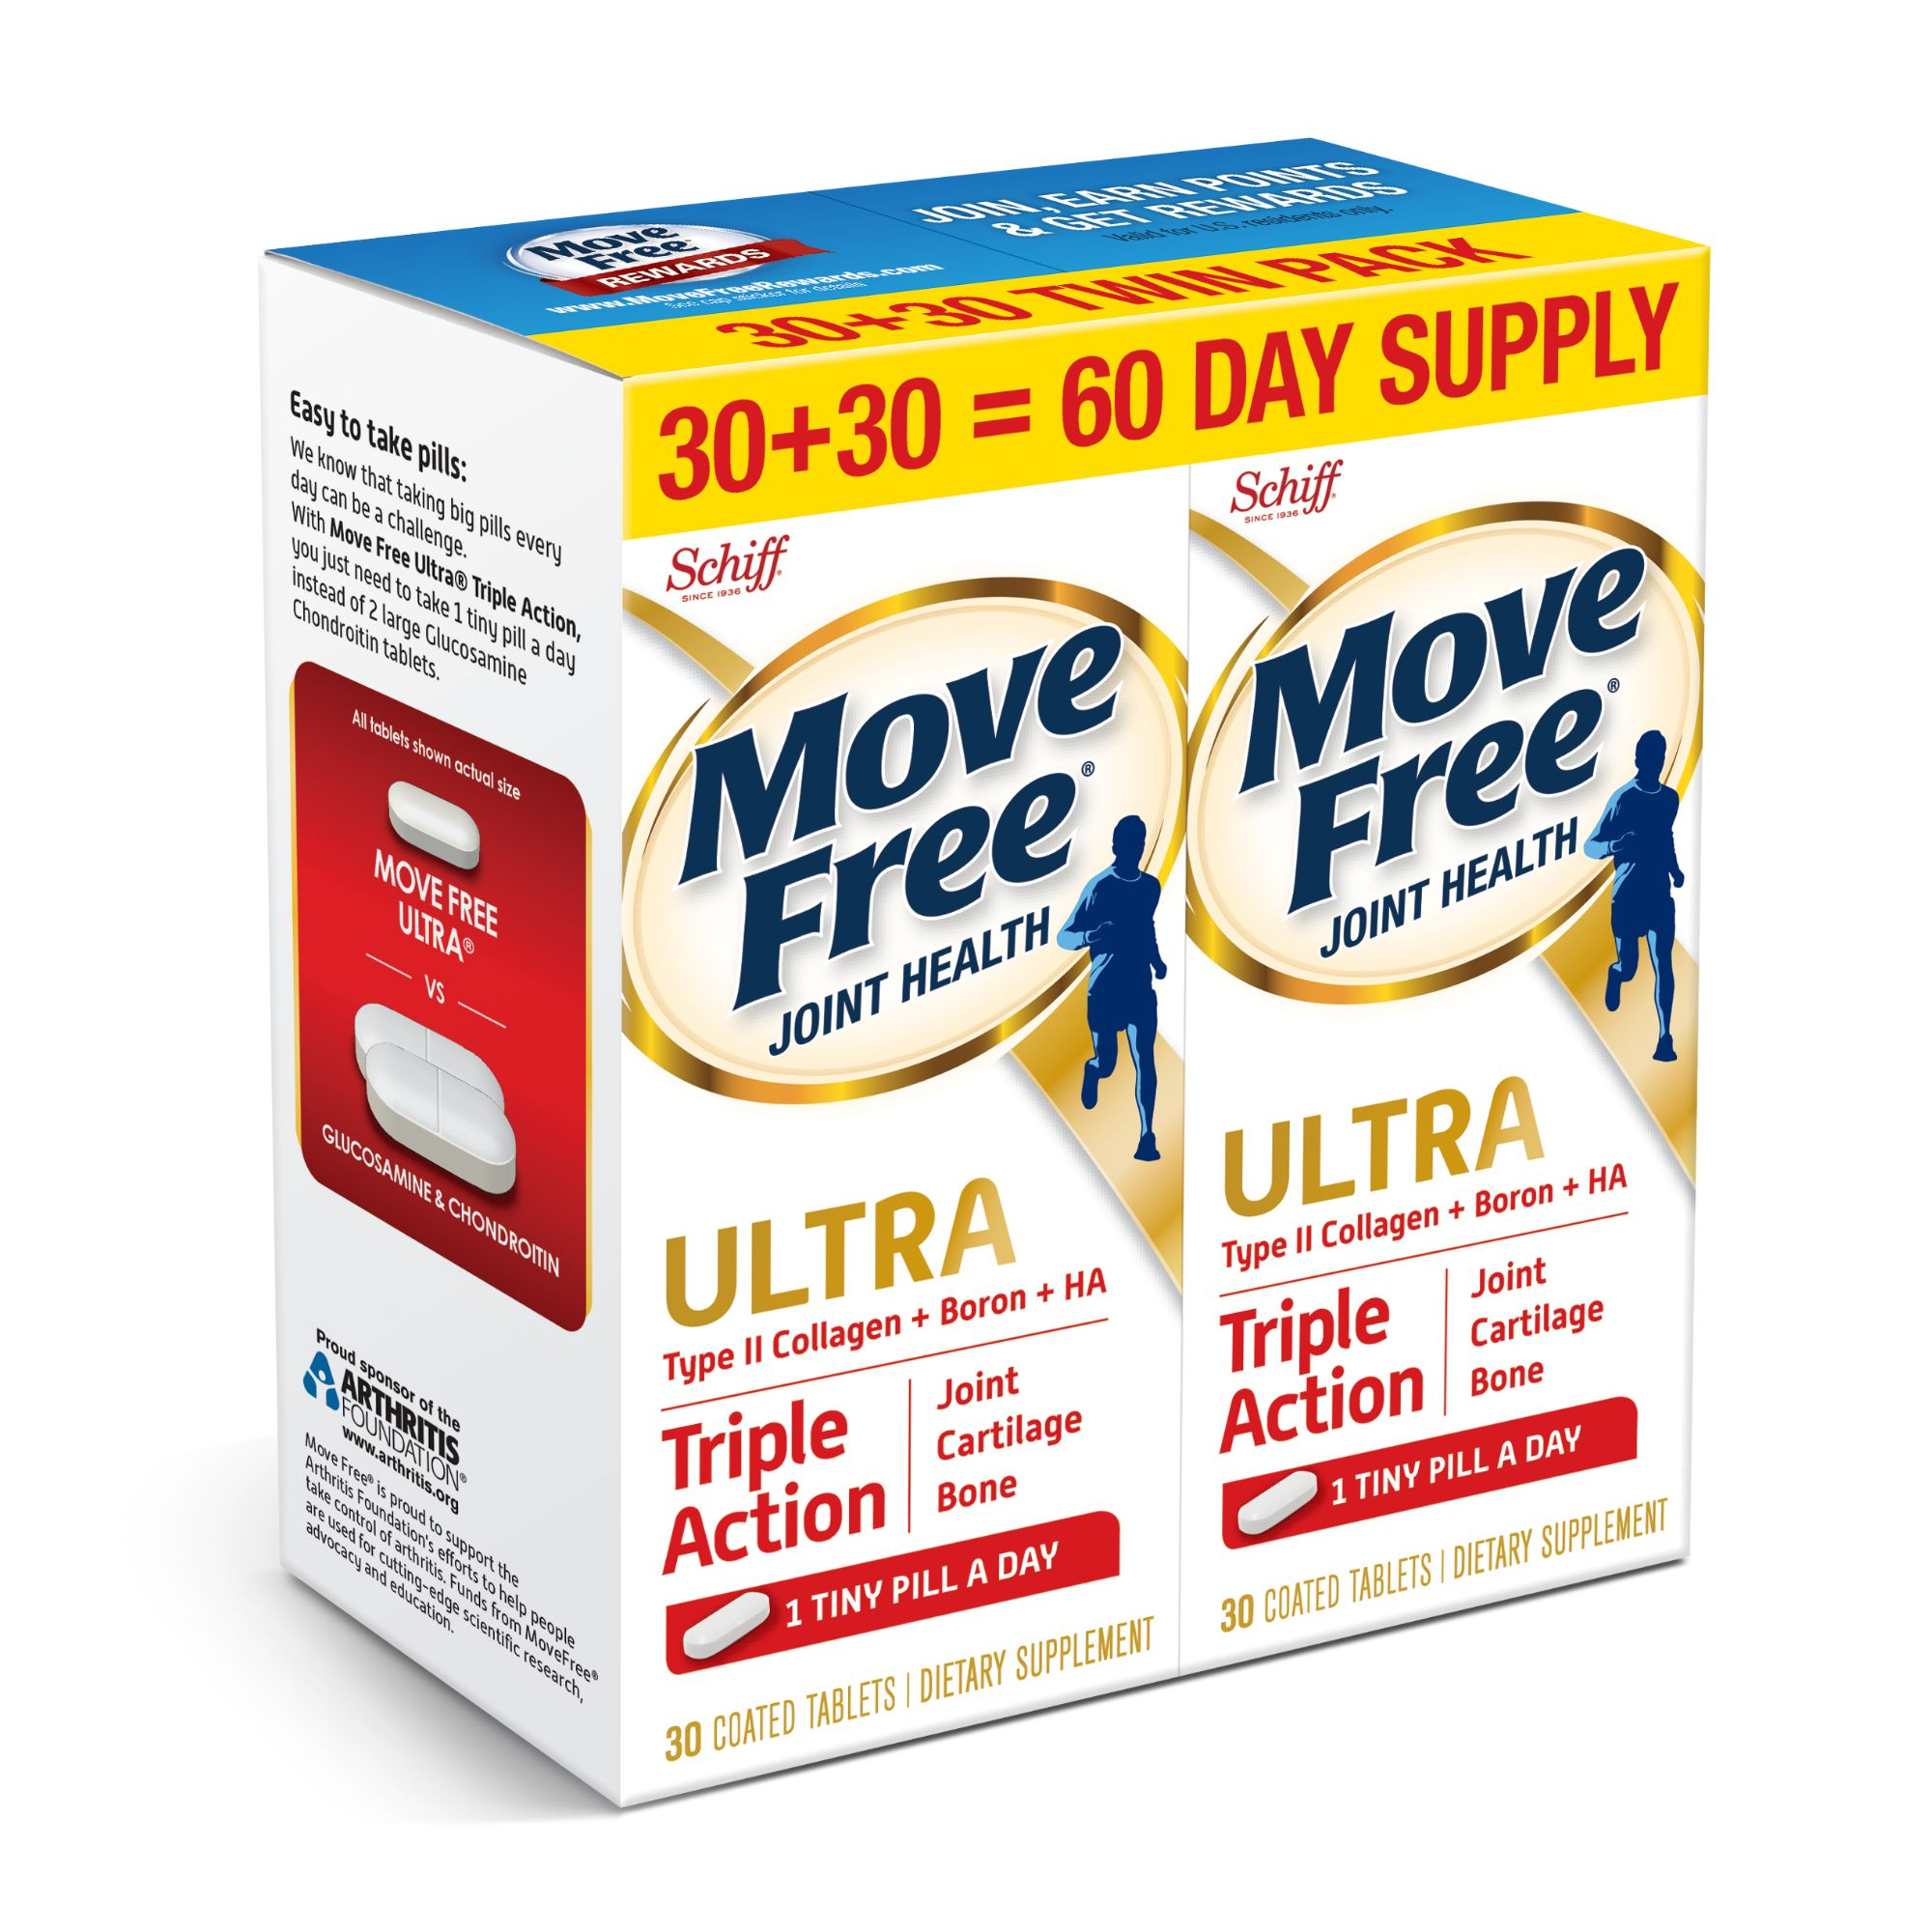 Move Free Ultra Triple Action, 60 count (2x30ct Twin Pack) - Joint Health Supplement with Type II Collagen, Boron and HA, One Tiny Pill